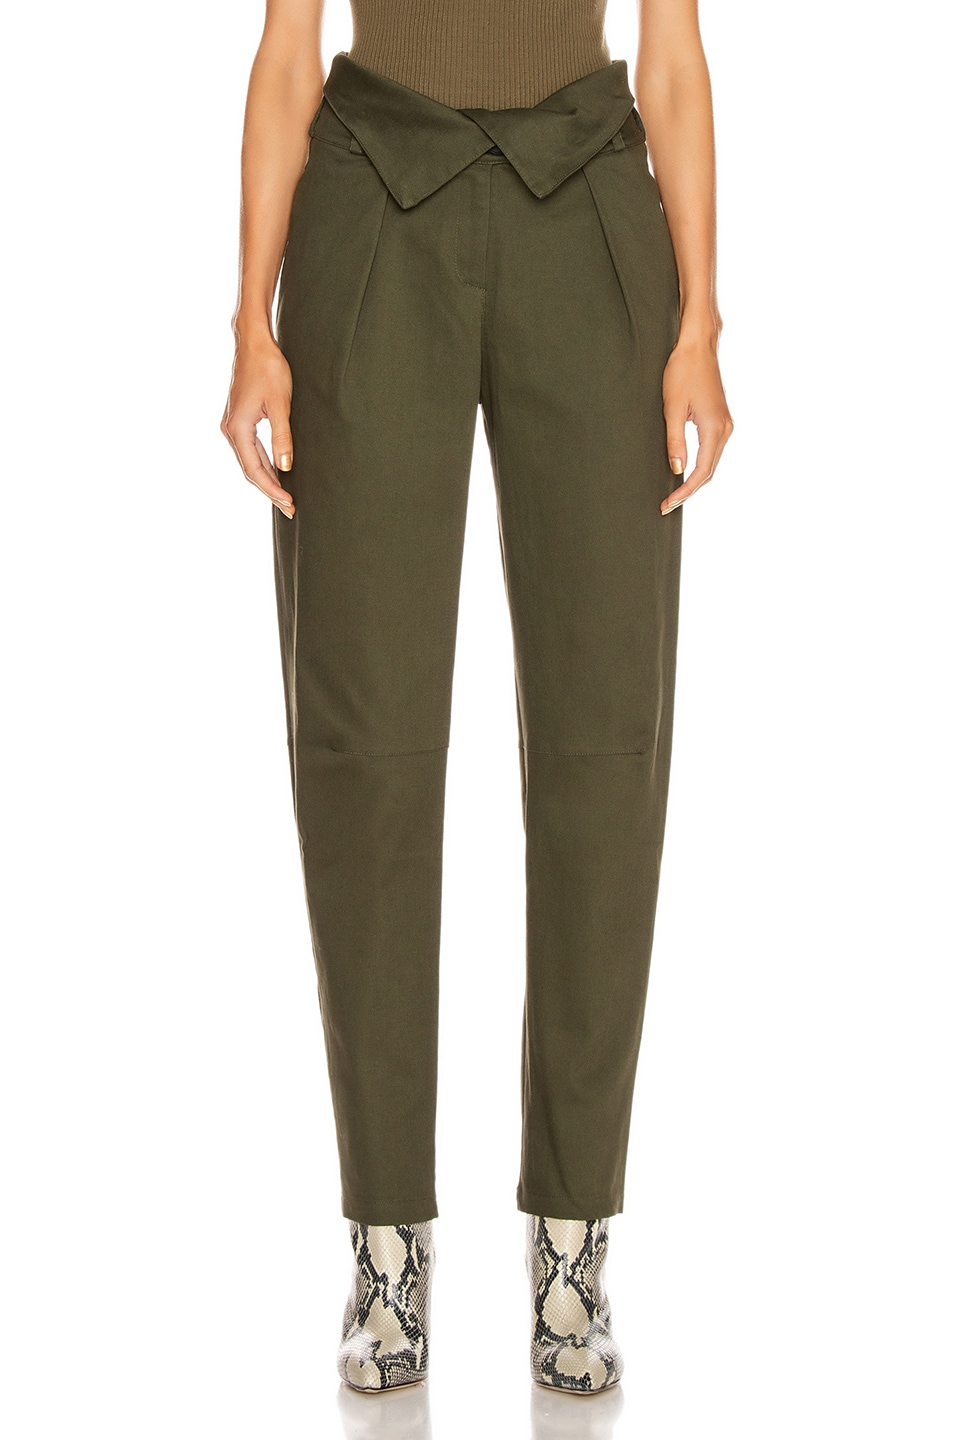 Image 1 of The Range Petite Corduroy Fold Over Pant in Deep Woods